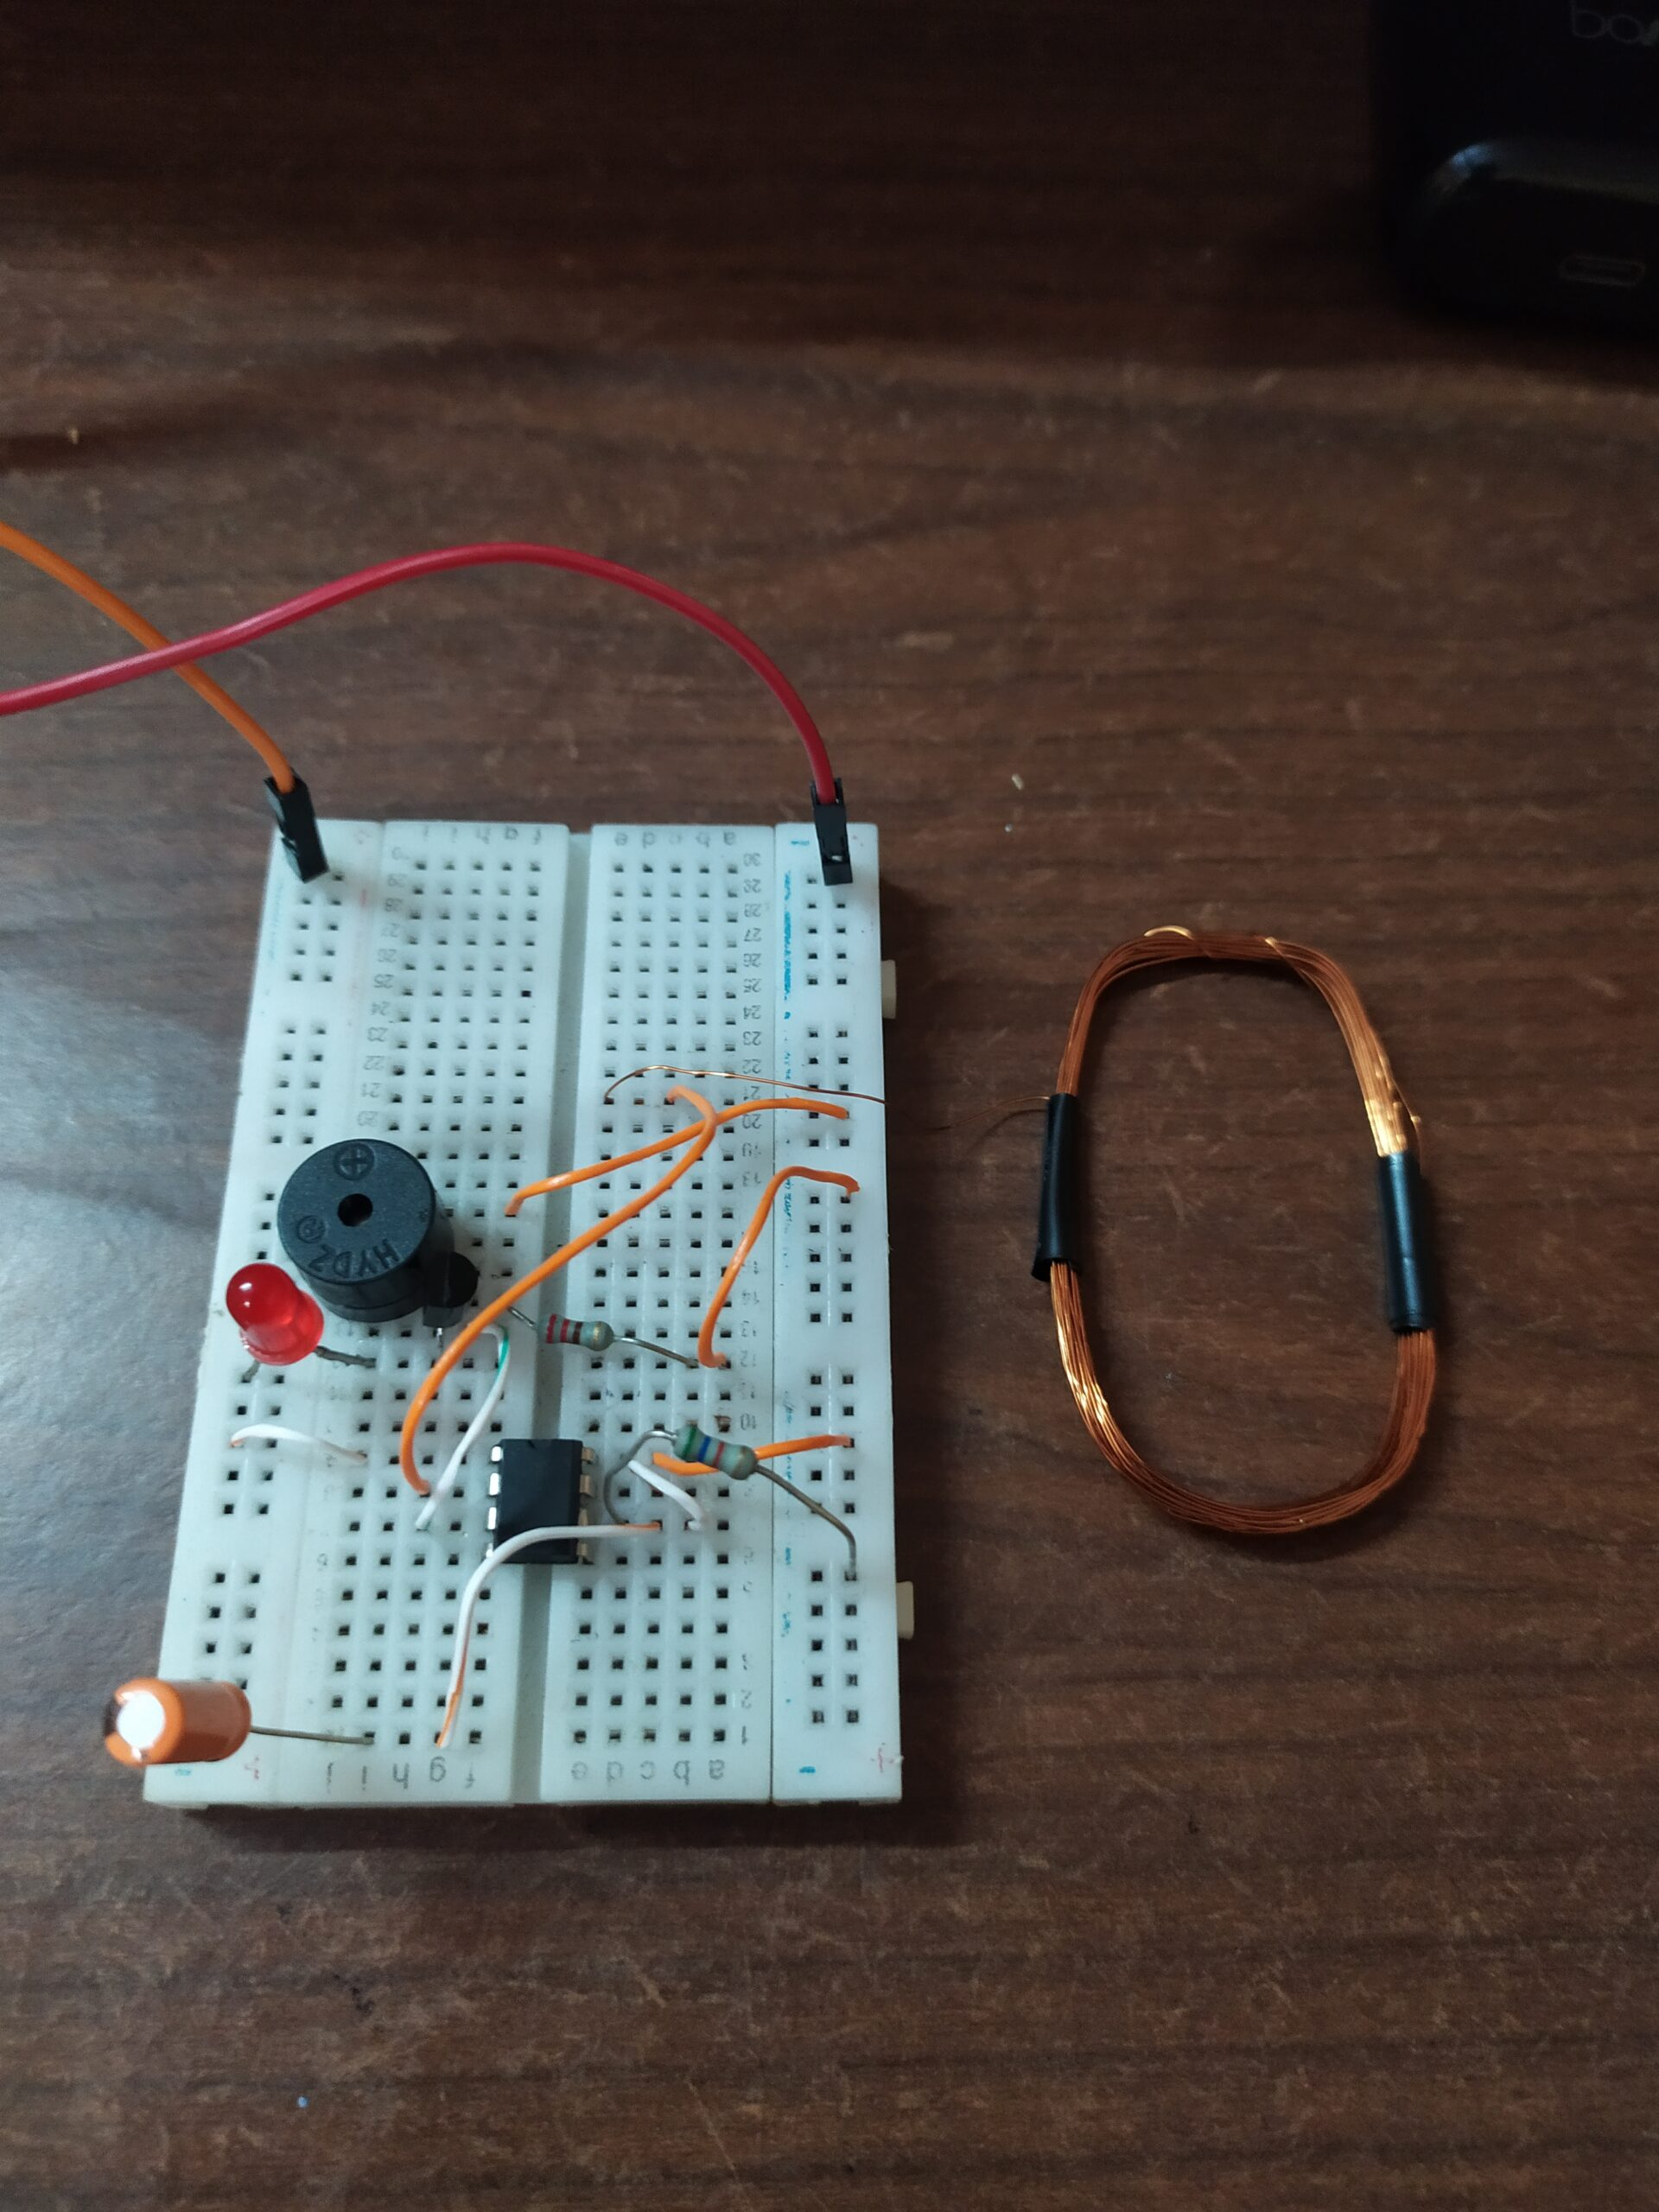 current detector using ic 555